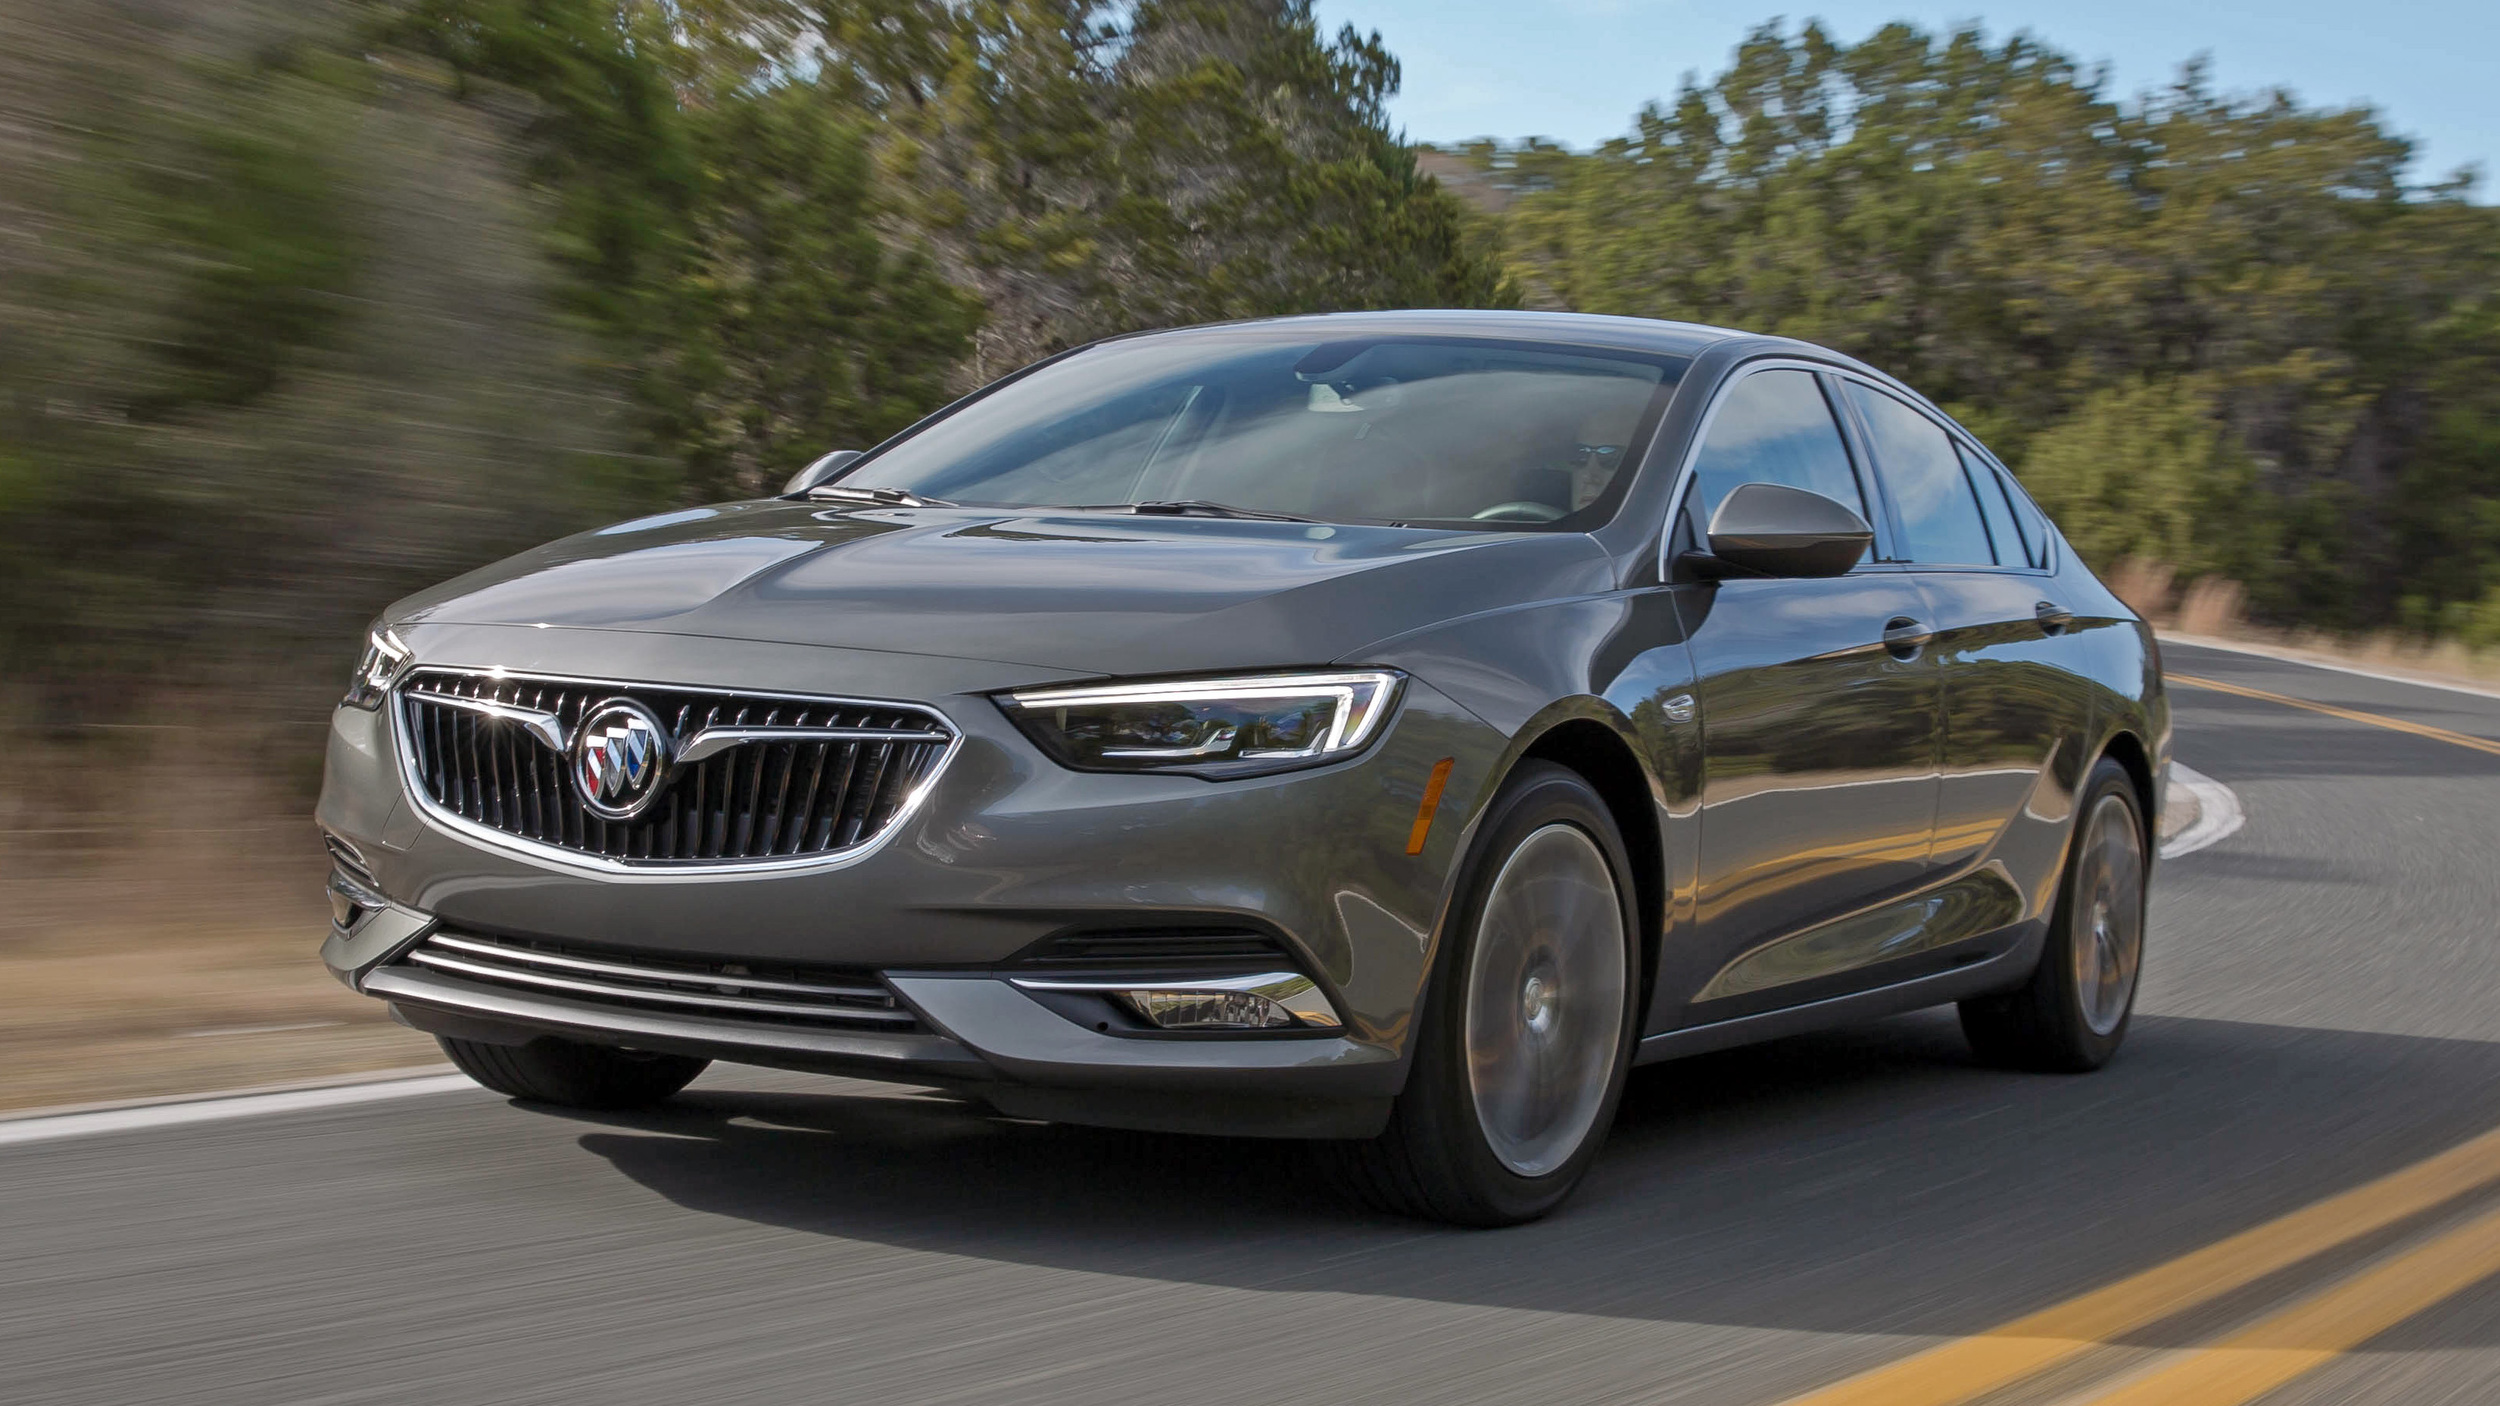 Regal Led Tv 32 Inch 2018 Buick Regal Sportback First Drive Review Autoblog